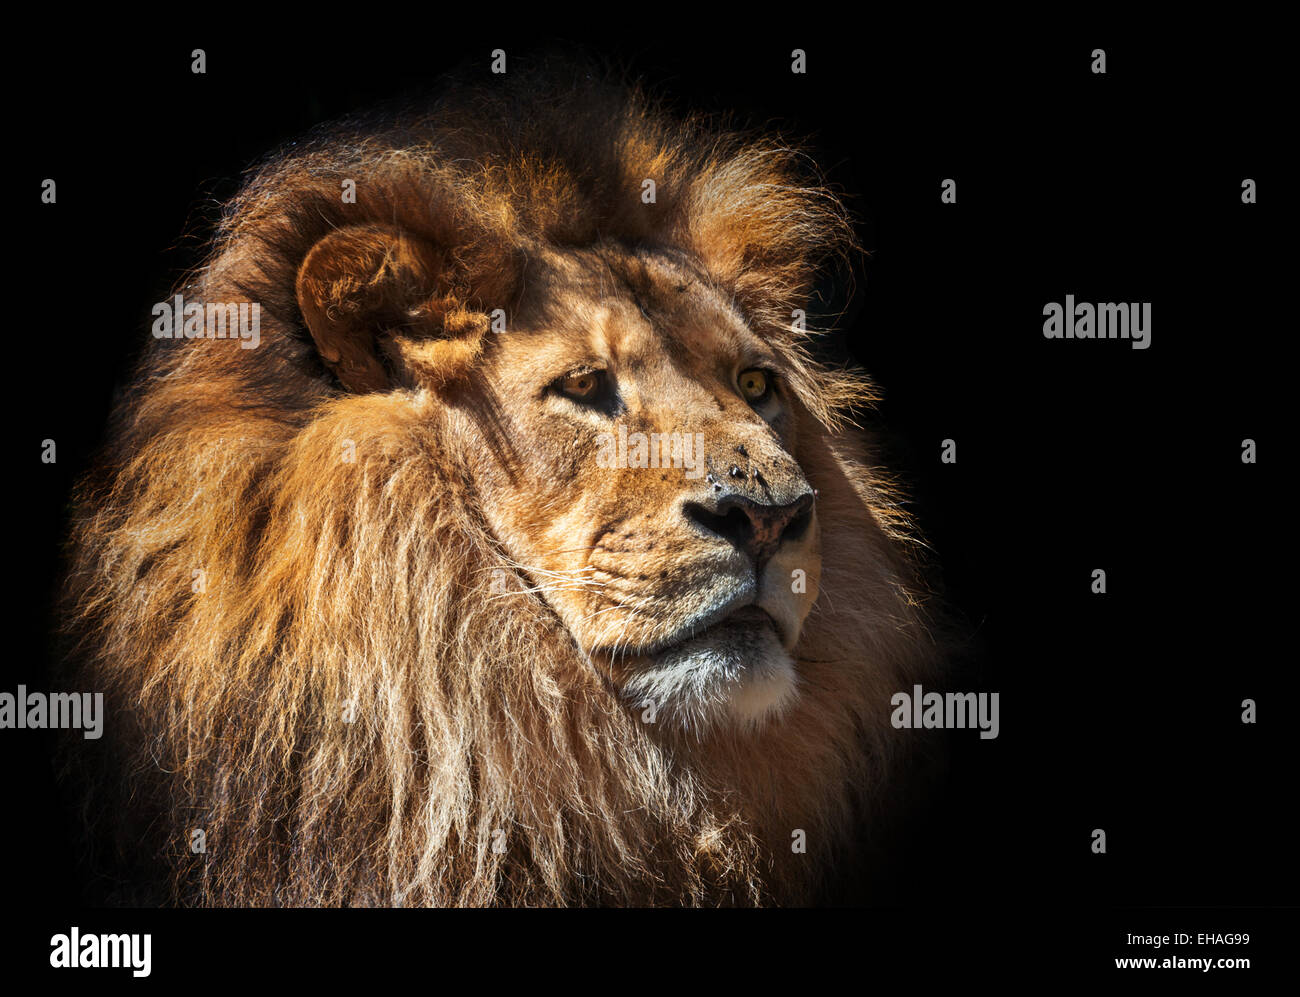 a moody lion thinking - Stock Image